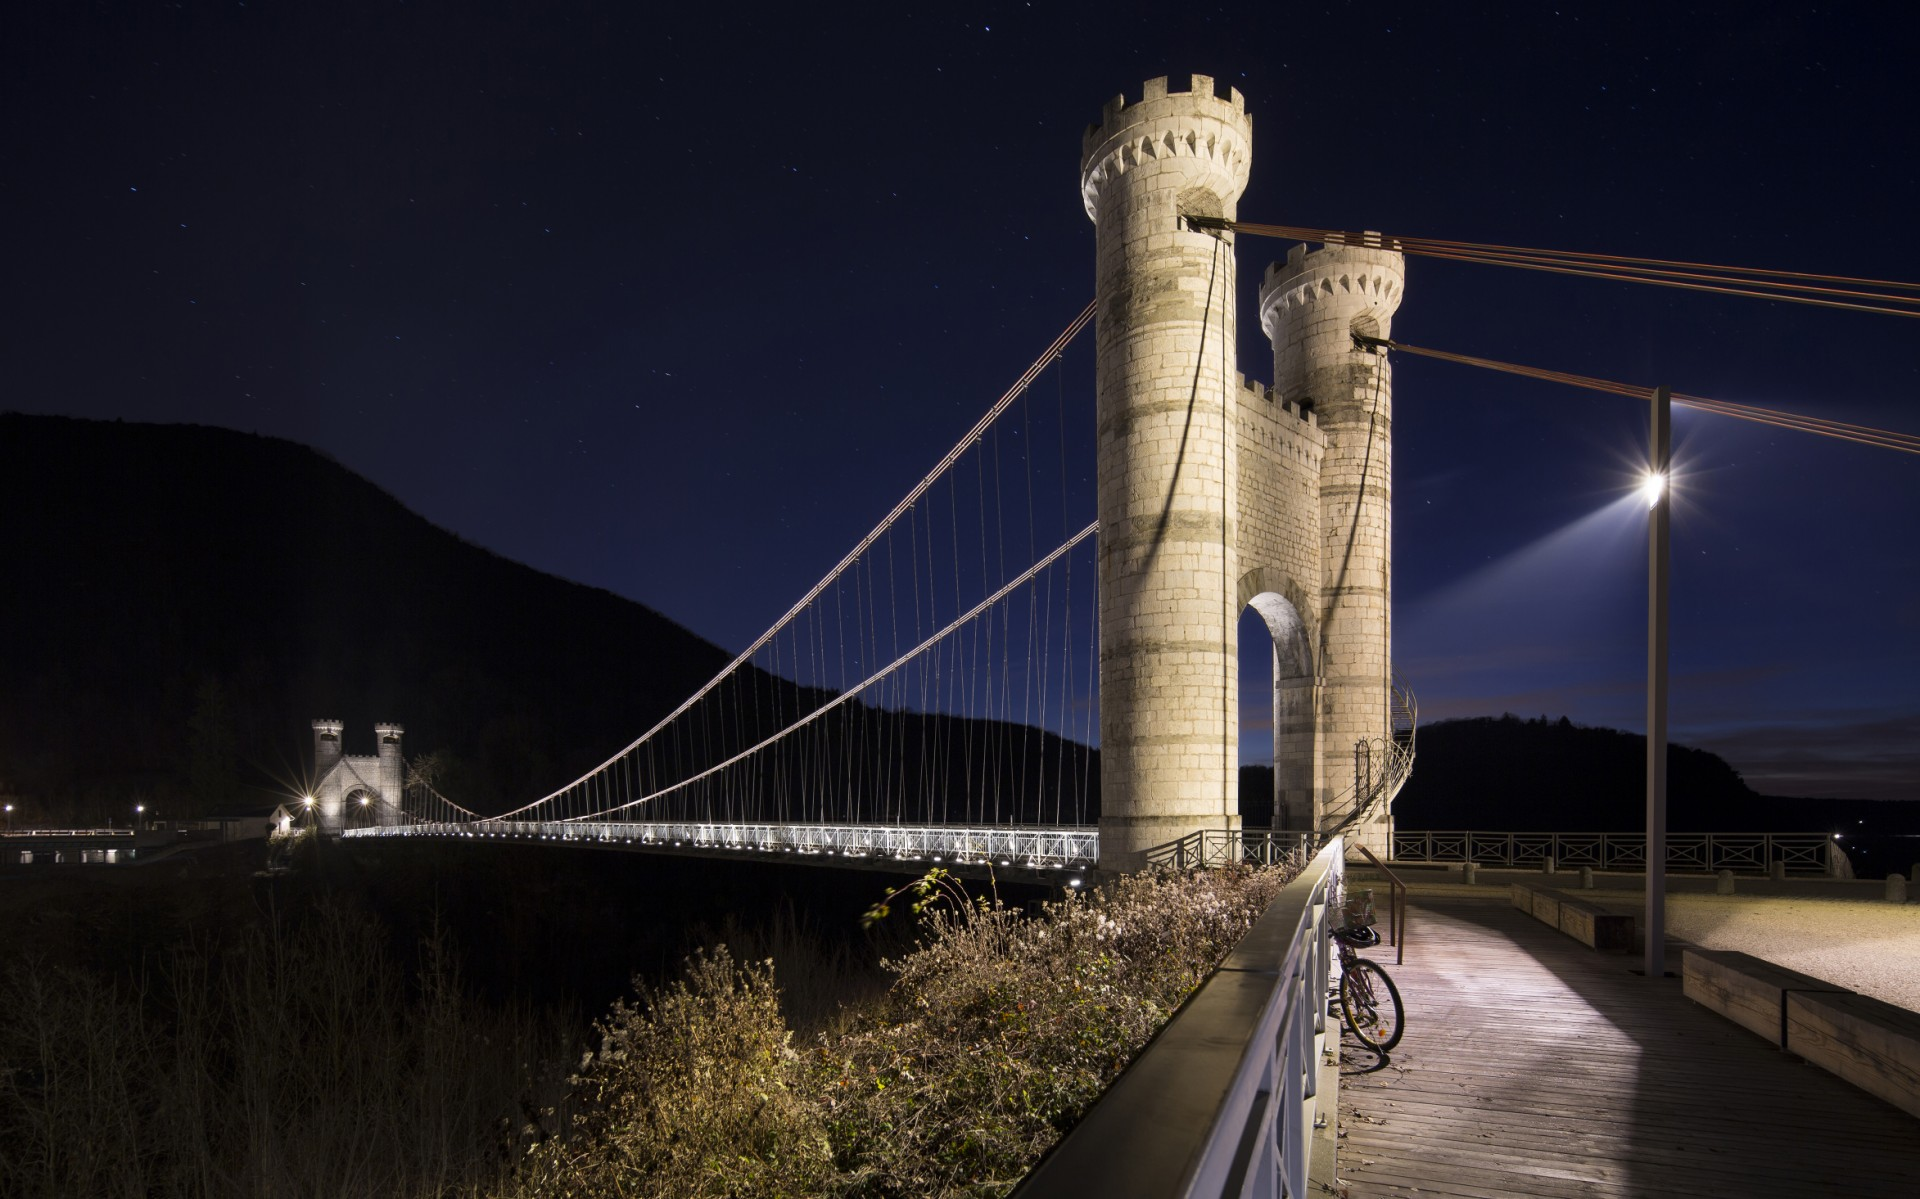 Les Eclairagistes Associés then used Lumenbeam Medium luminaires in 2700K to floodlight the bridge's towers, accenting architectural details and making the structures visible from a distance.